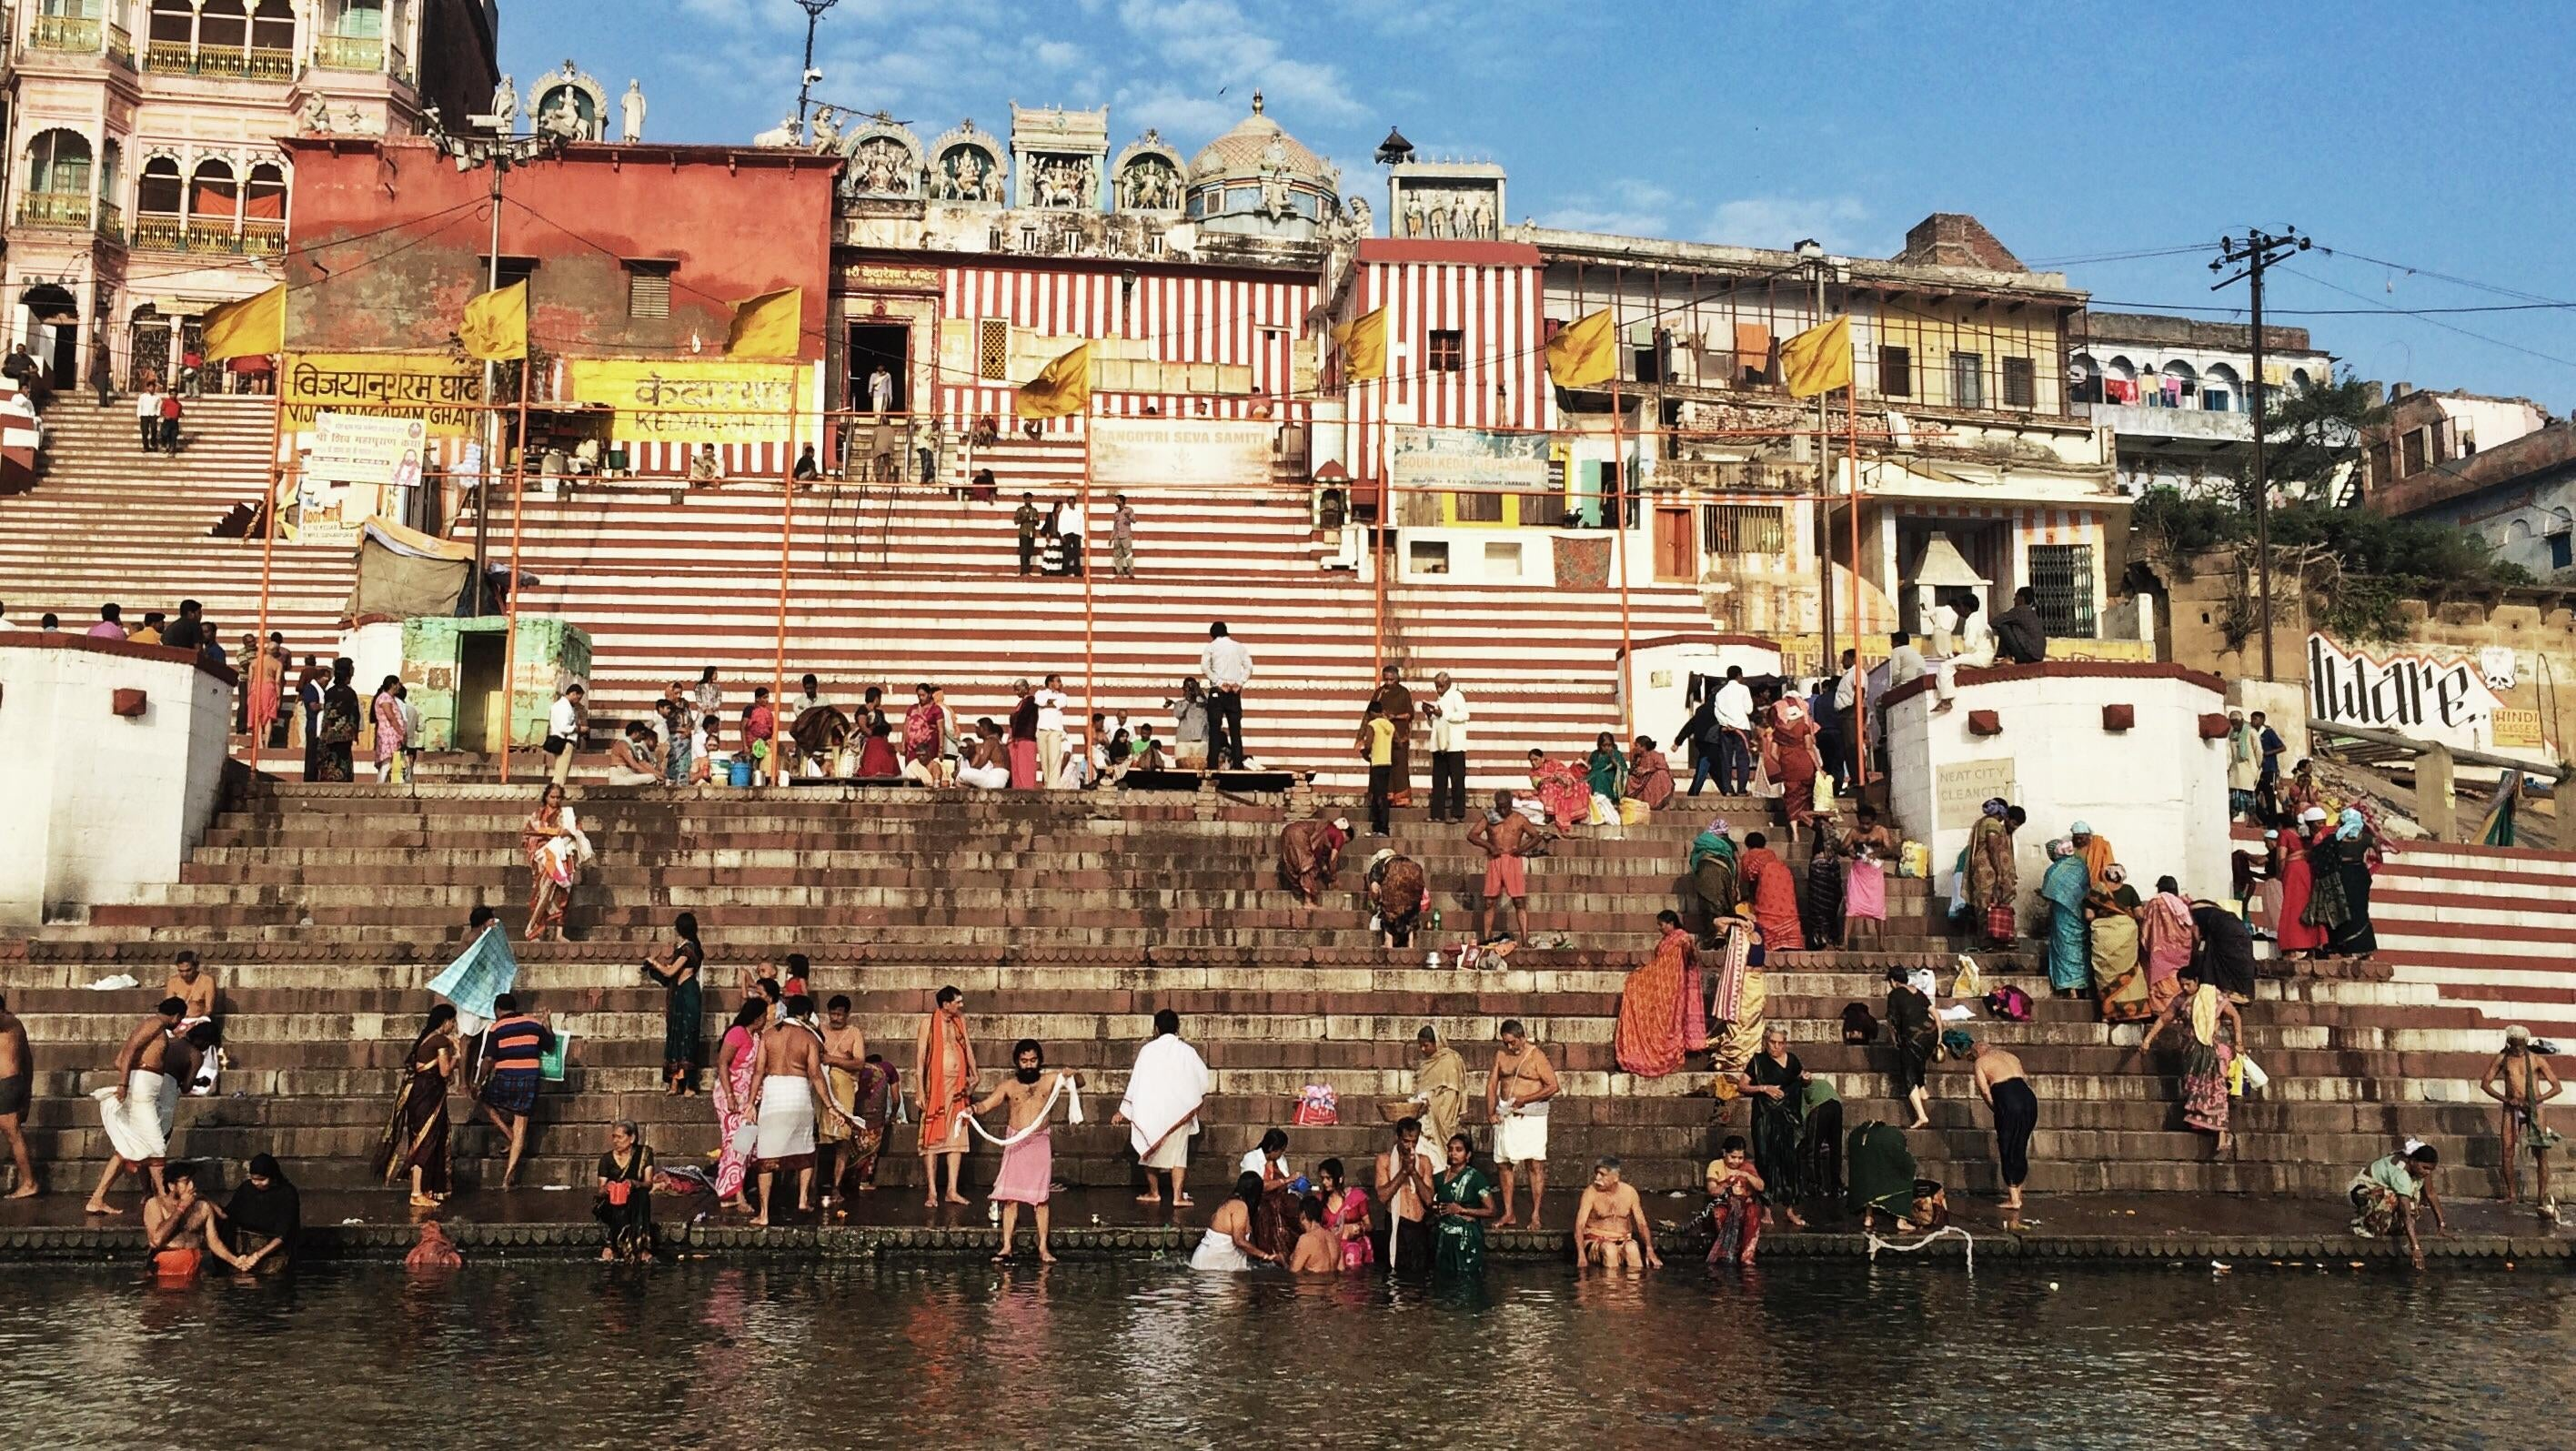 Plaza en Río Ganges